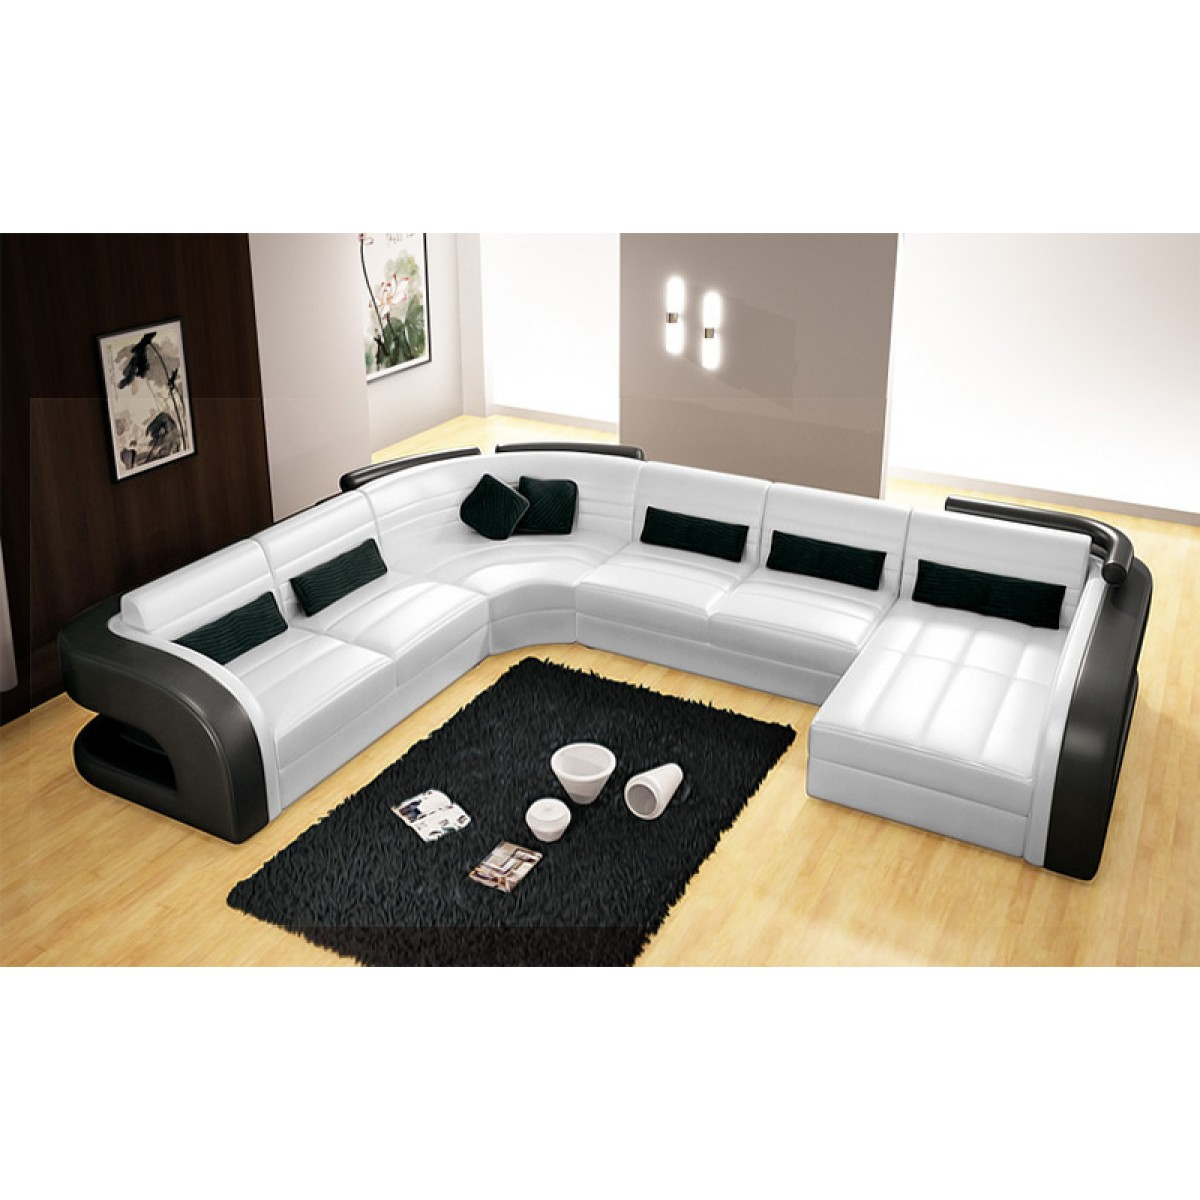 Canap d 39 angle panoramique en cuir poltroni 7 places pop - Canape cuir 7 places ...